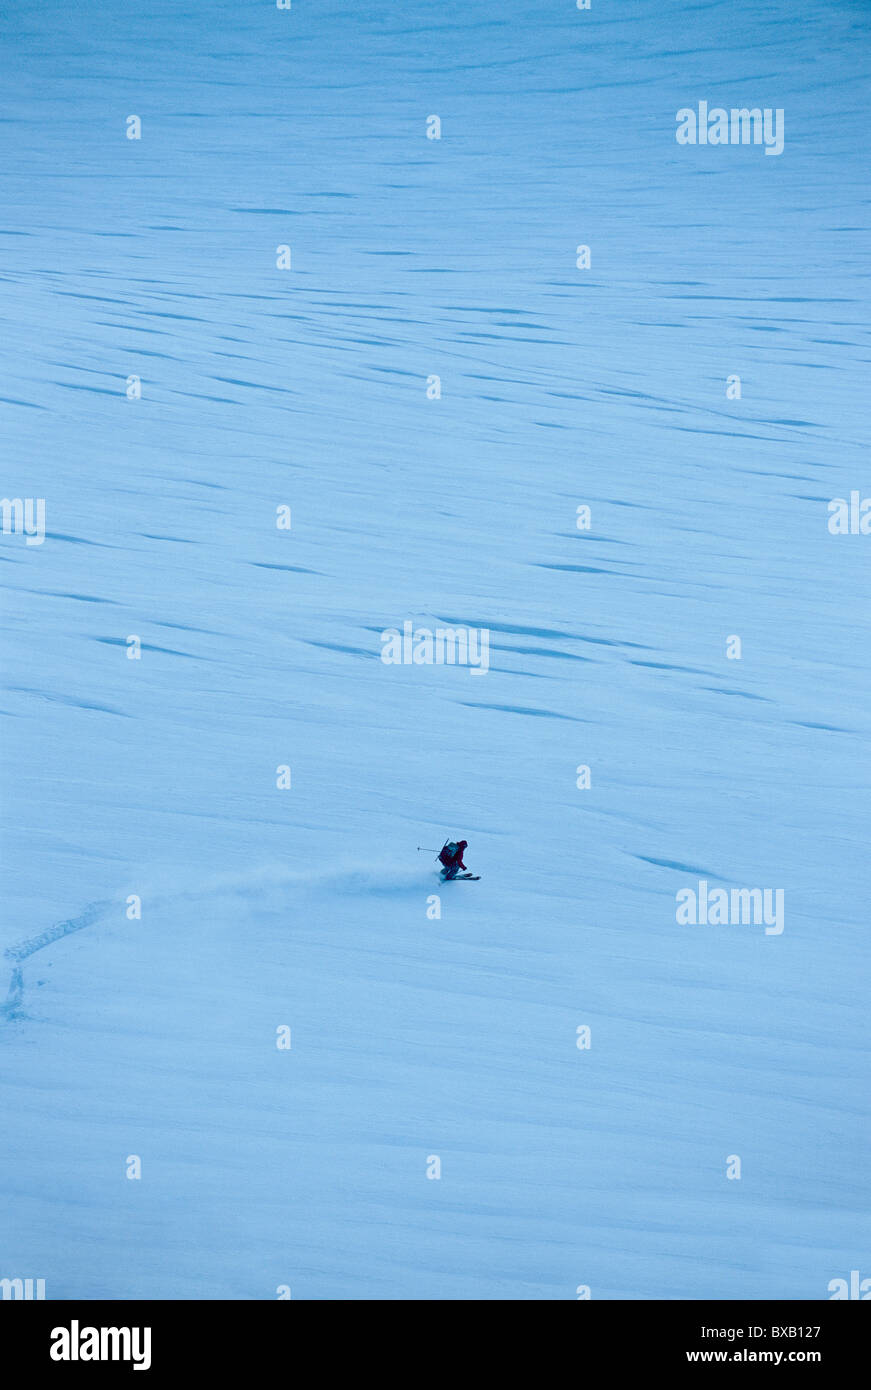 Distant view of tourist skiing - Stock Image